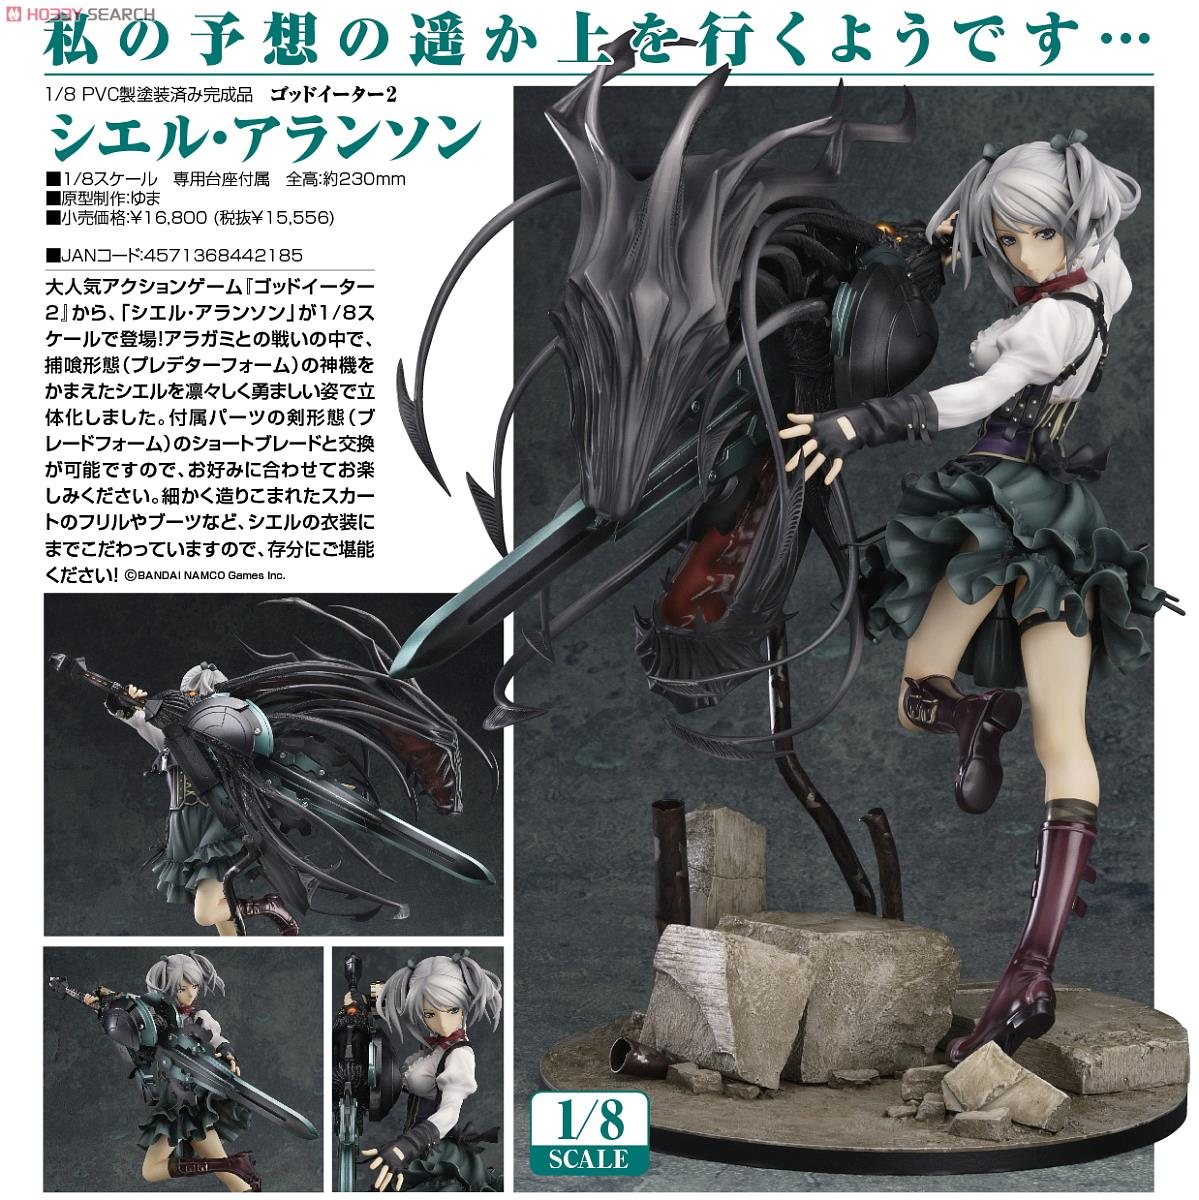 """GoodSmile Company has announced preoder for this lovely scaled figure of Ciel Alencon from God Eater 2. She is posed with her powerful God Arc weapon in """"Predator Form"""". A """"Blade Form"""" version of the weapon is also included, allowing you to choose which you prefer.   She is scheduled for release in Dec 2014, and will be retailing for 16,800 yen. Interested folks can place your preorder with HobbyLink Japan, CDJapan and Hobby Search."""